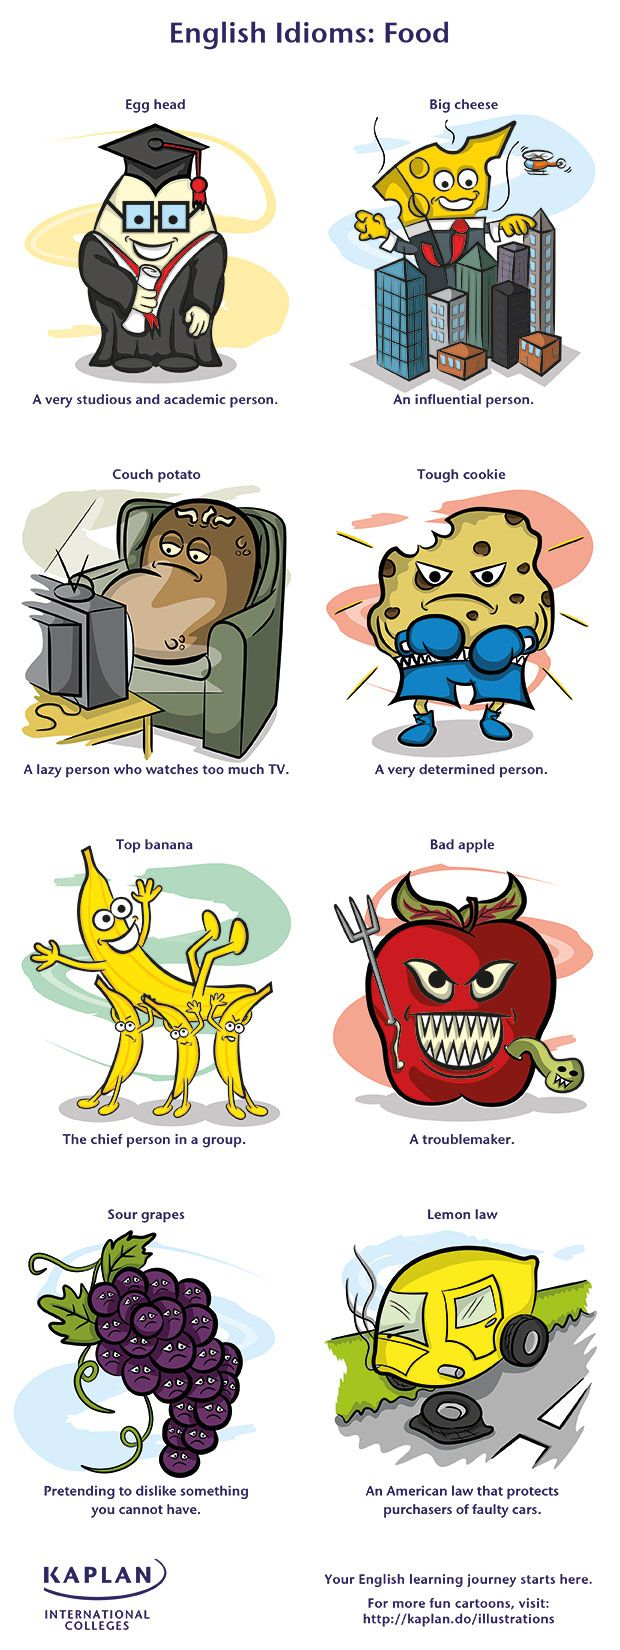 EwR.Poster #English English Idioms about food